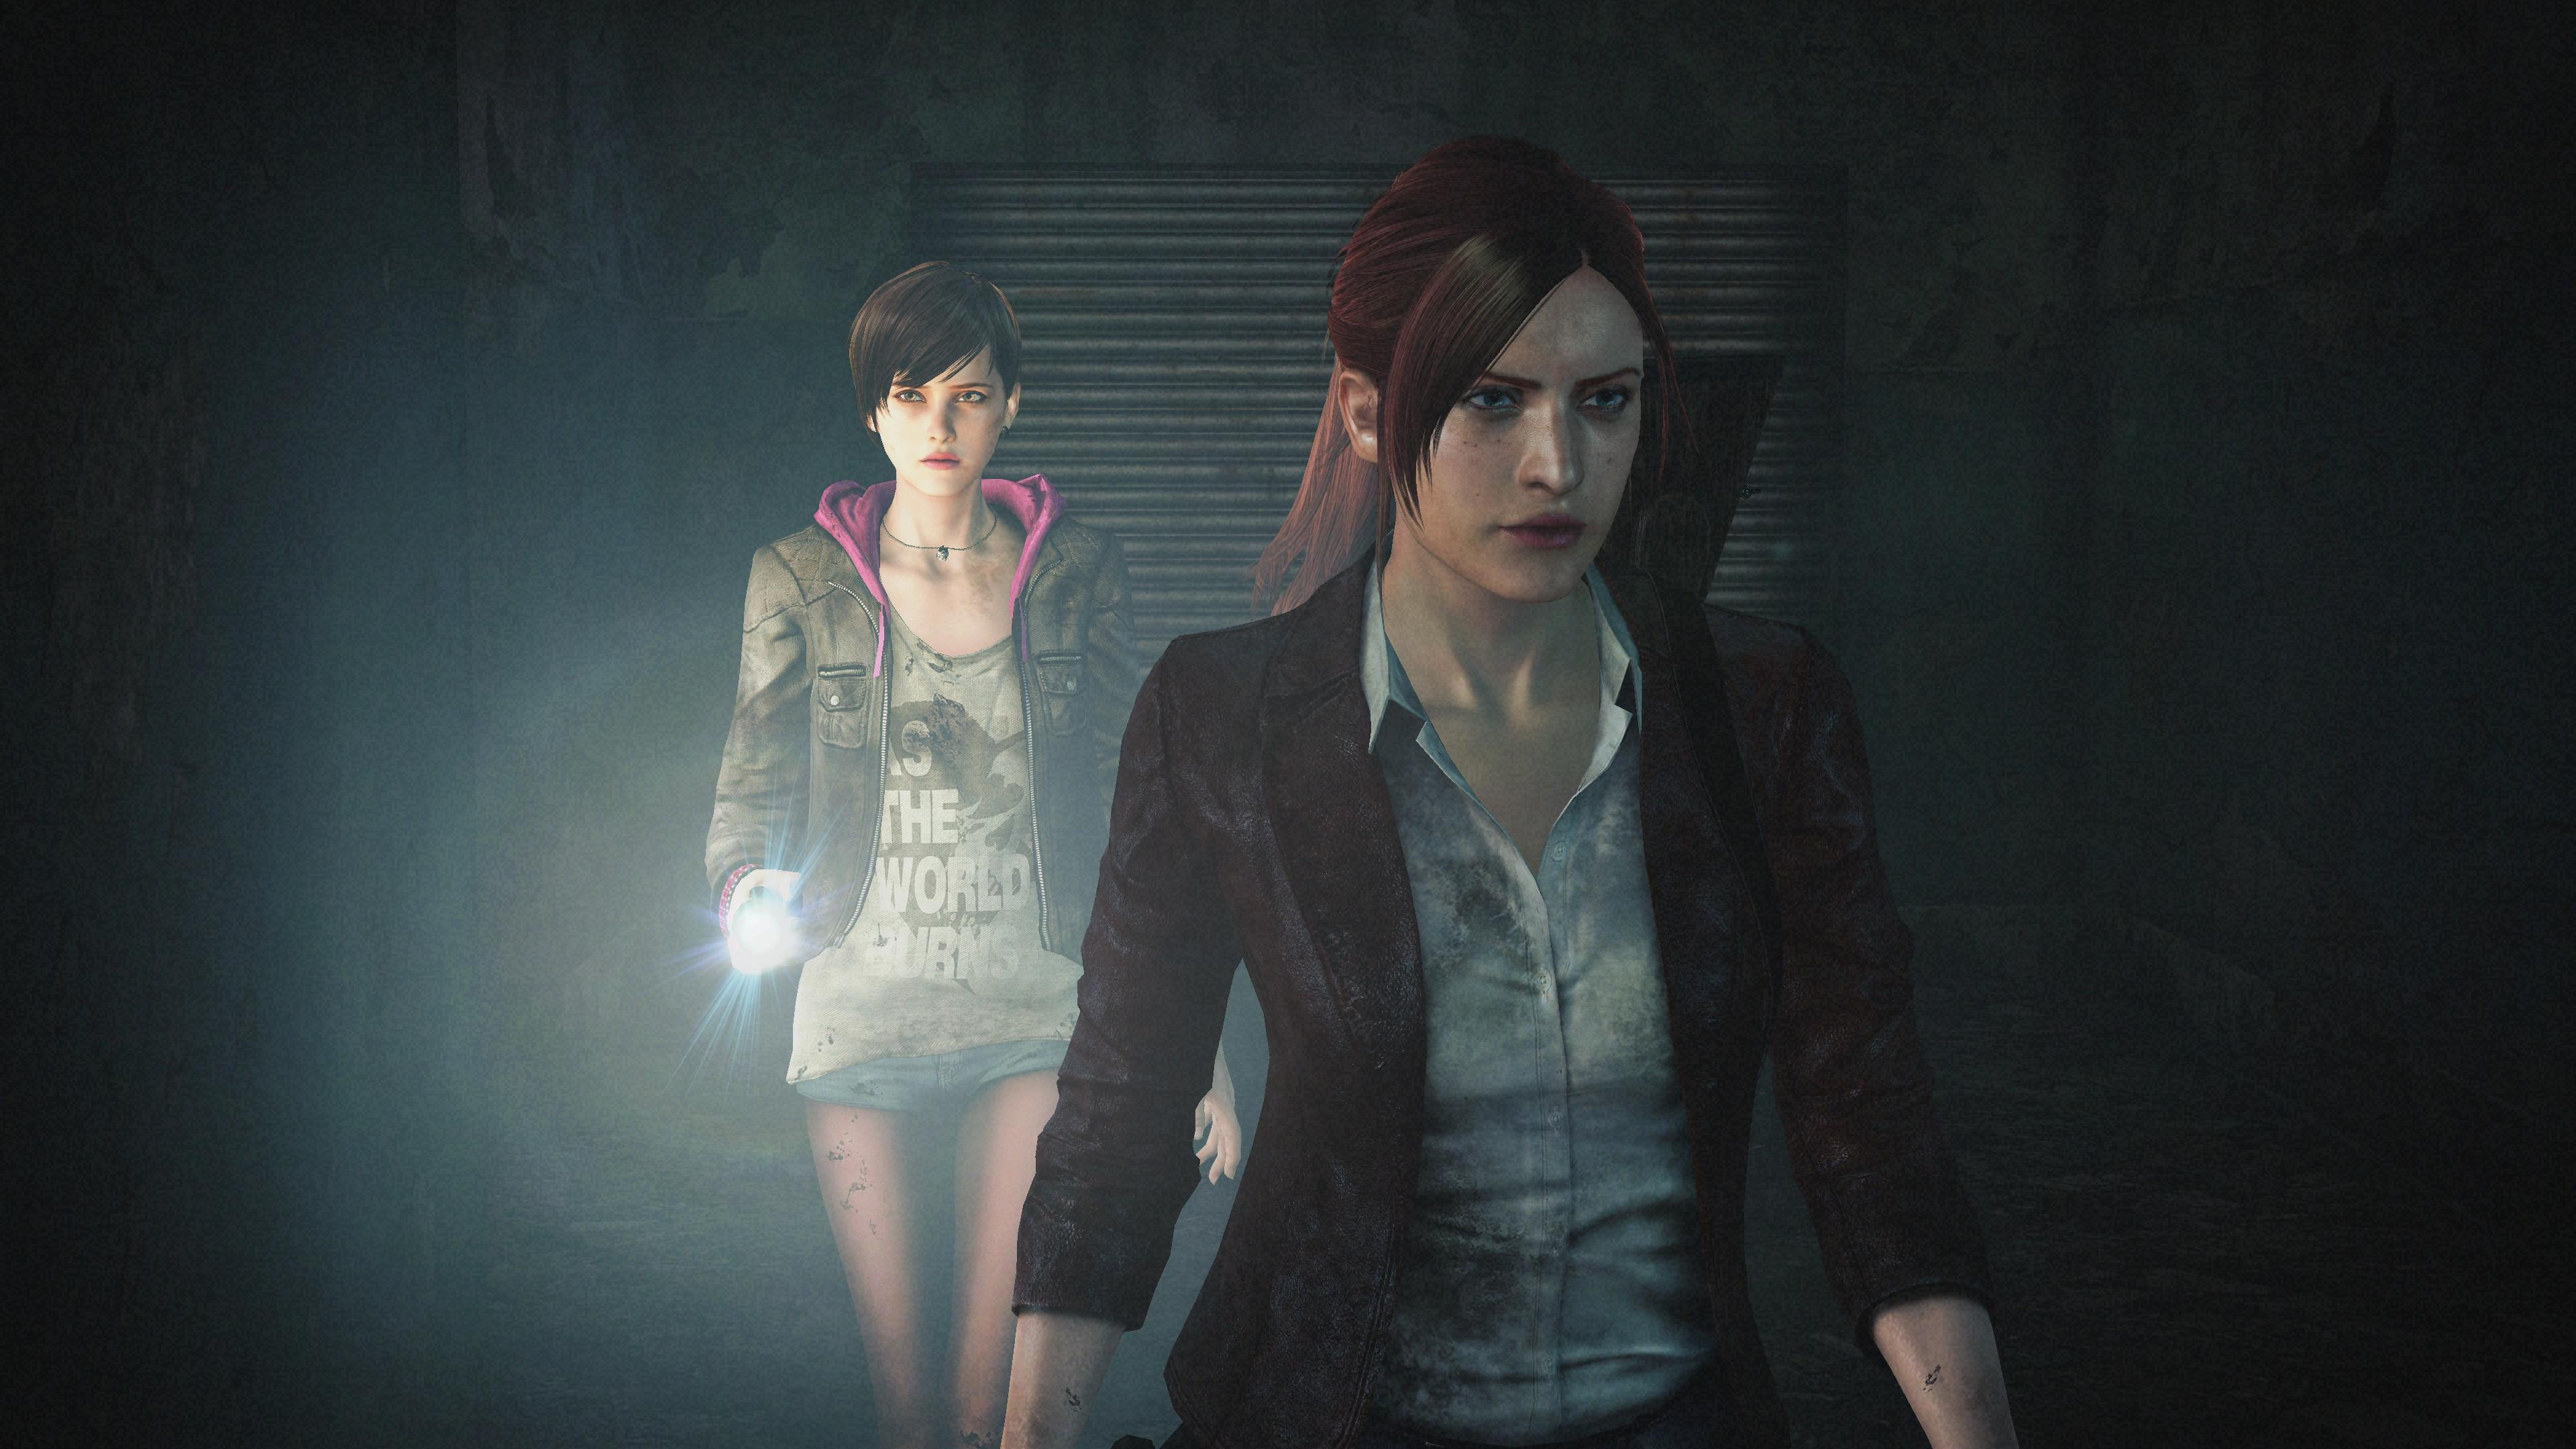 Ps4 Resident Evil Revelations 2 R2 Region 3 English Claire Redfield And Moira Burton